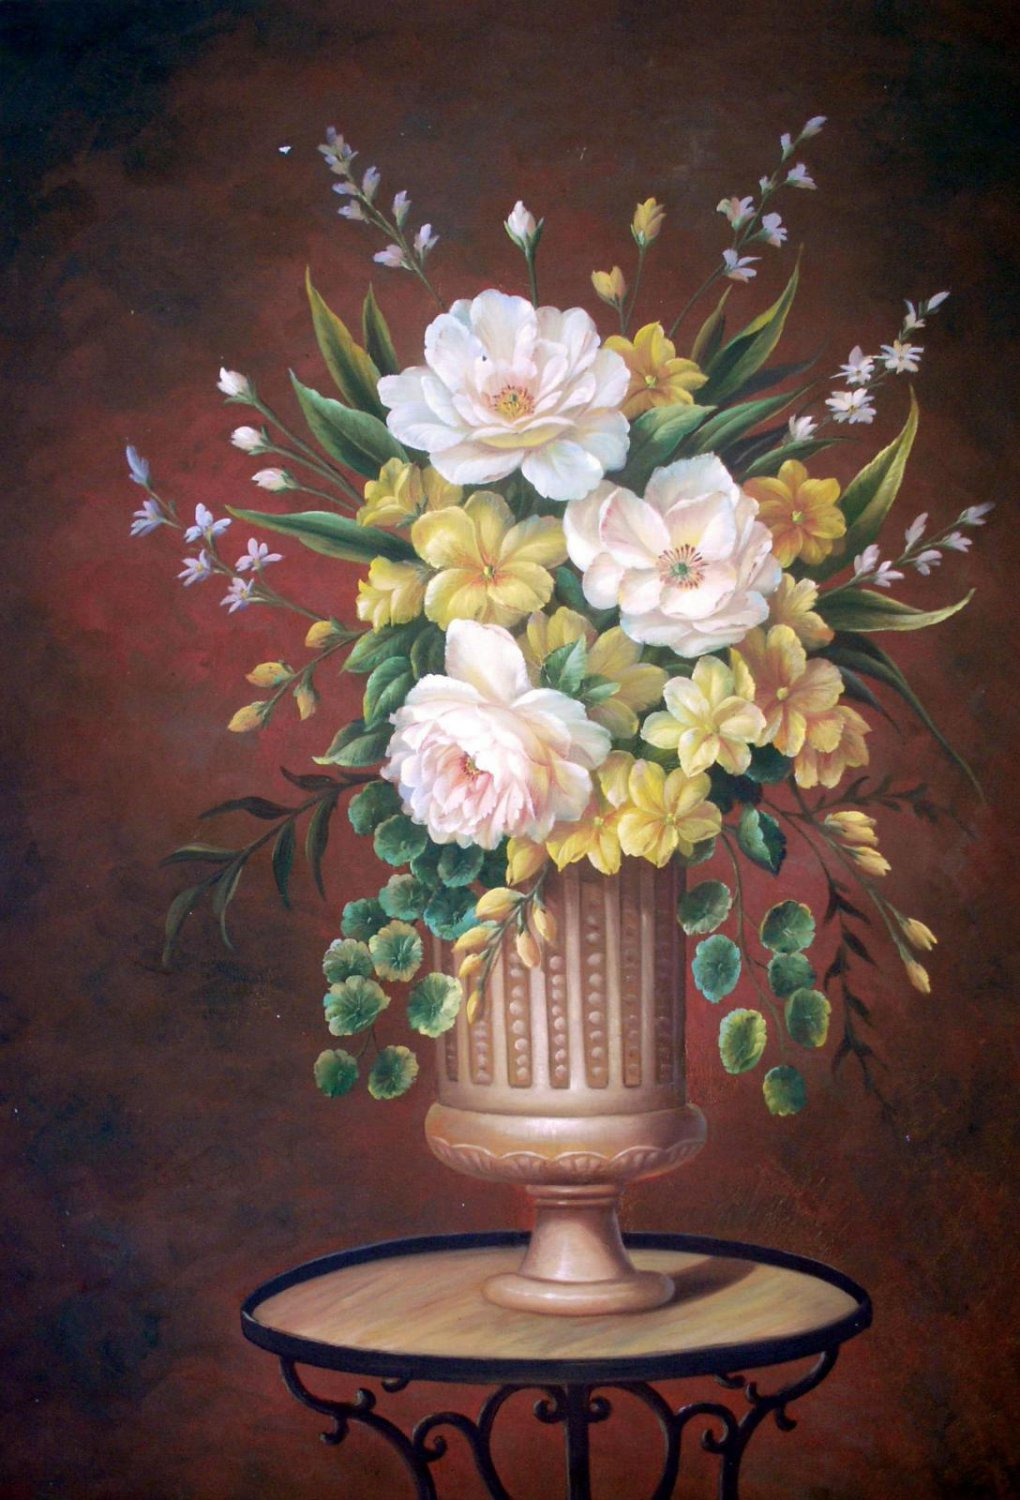 Vase Flower 24x36 in. stretched Oil Painting Canvas Art Wall Decor modern501